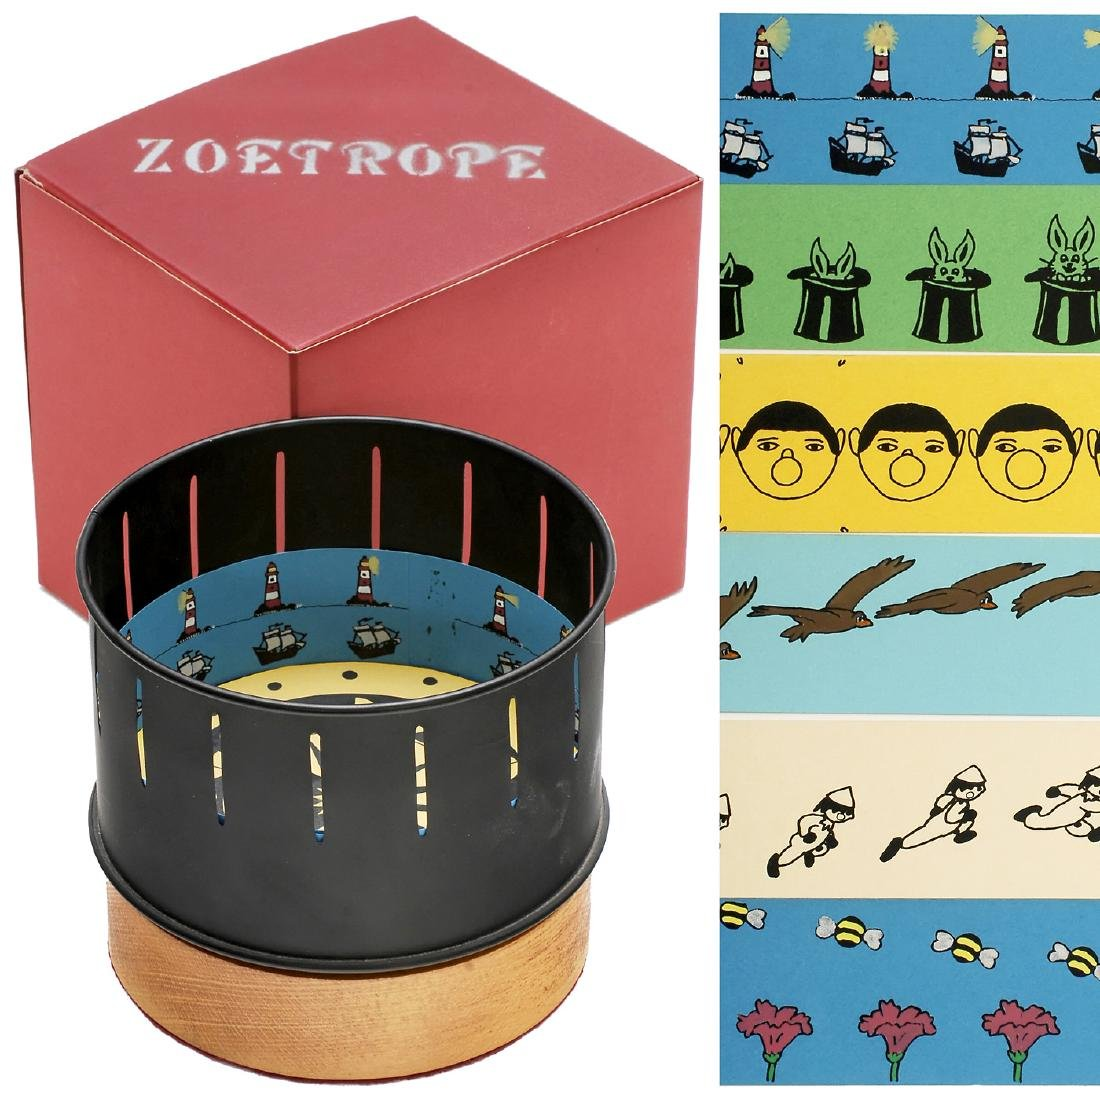 Small Zoetrope by Auckland, 1987